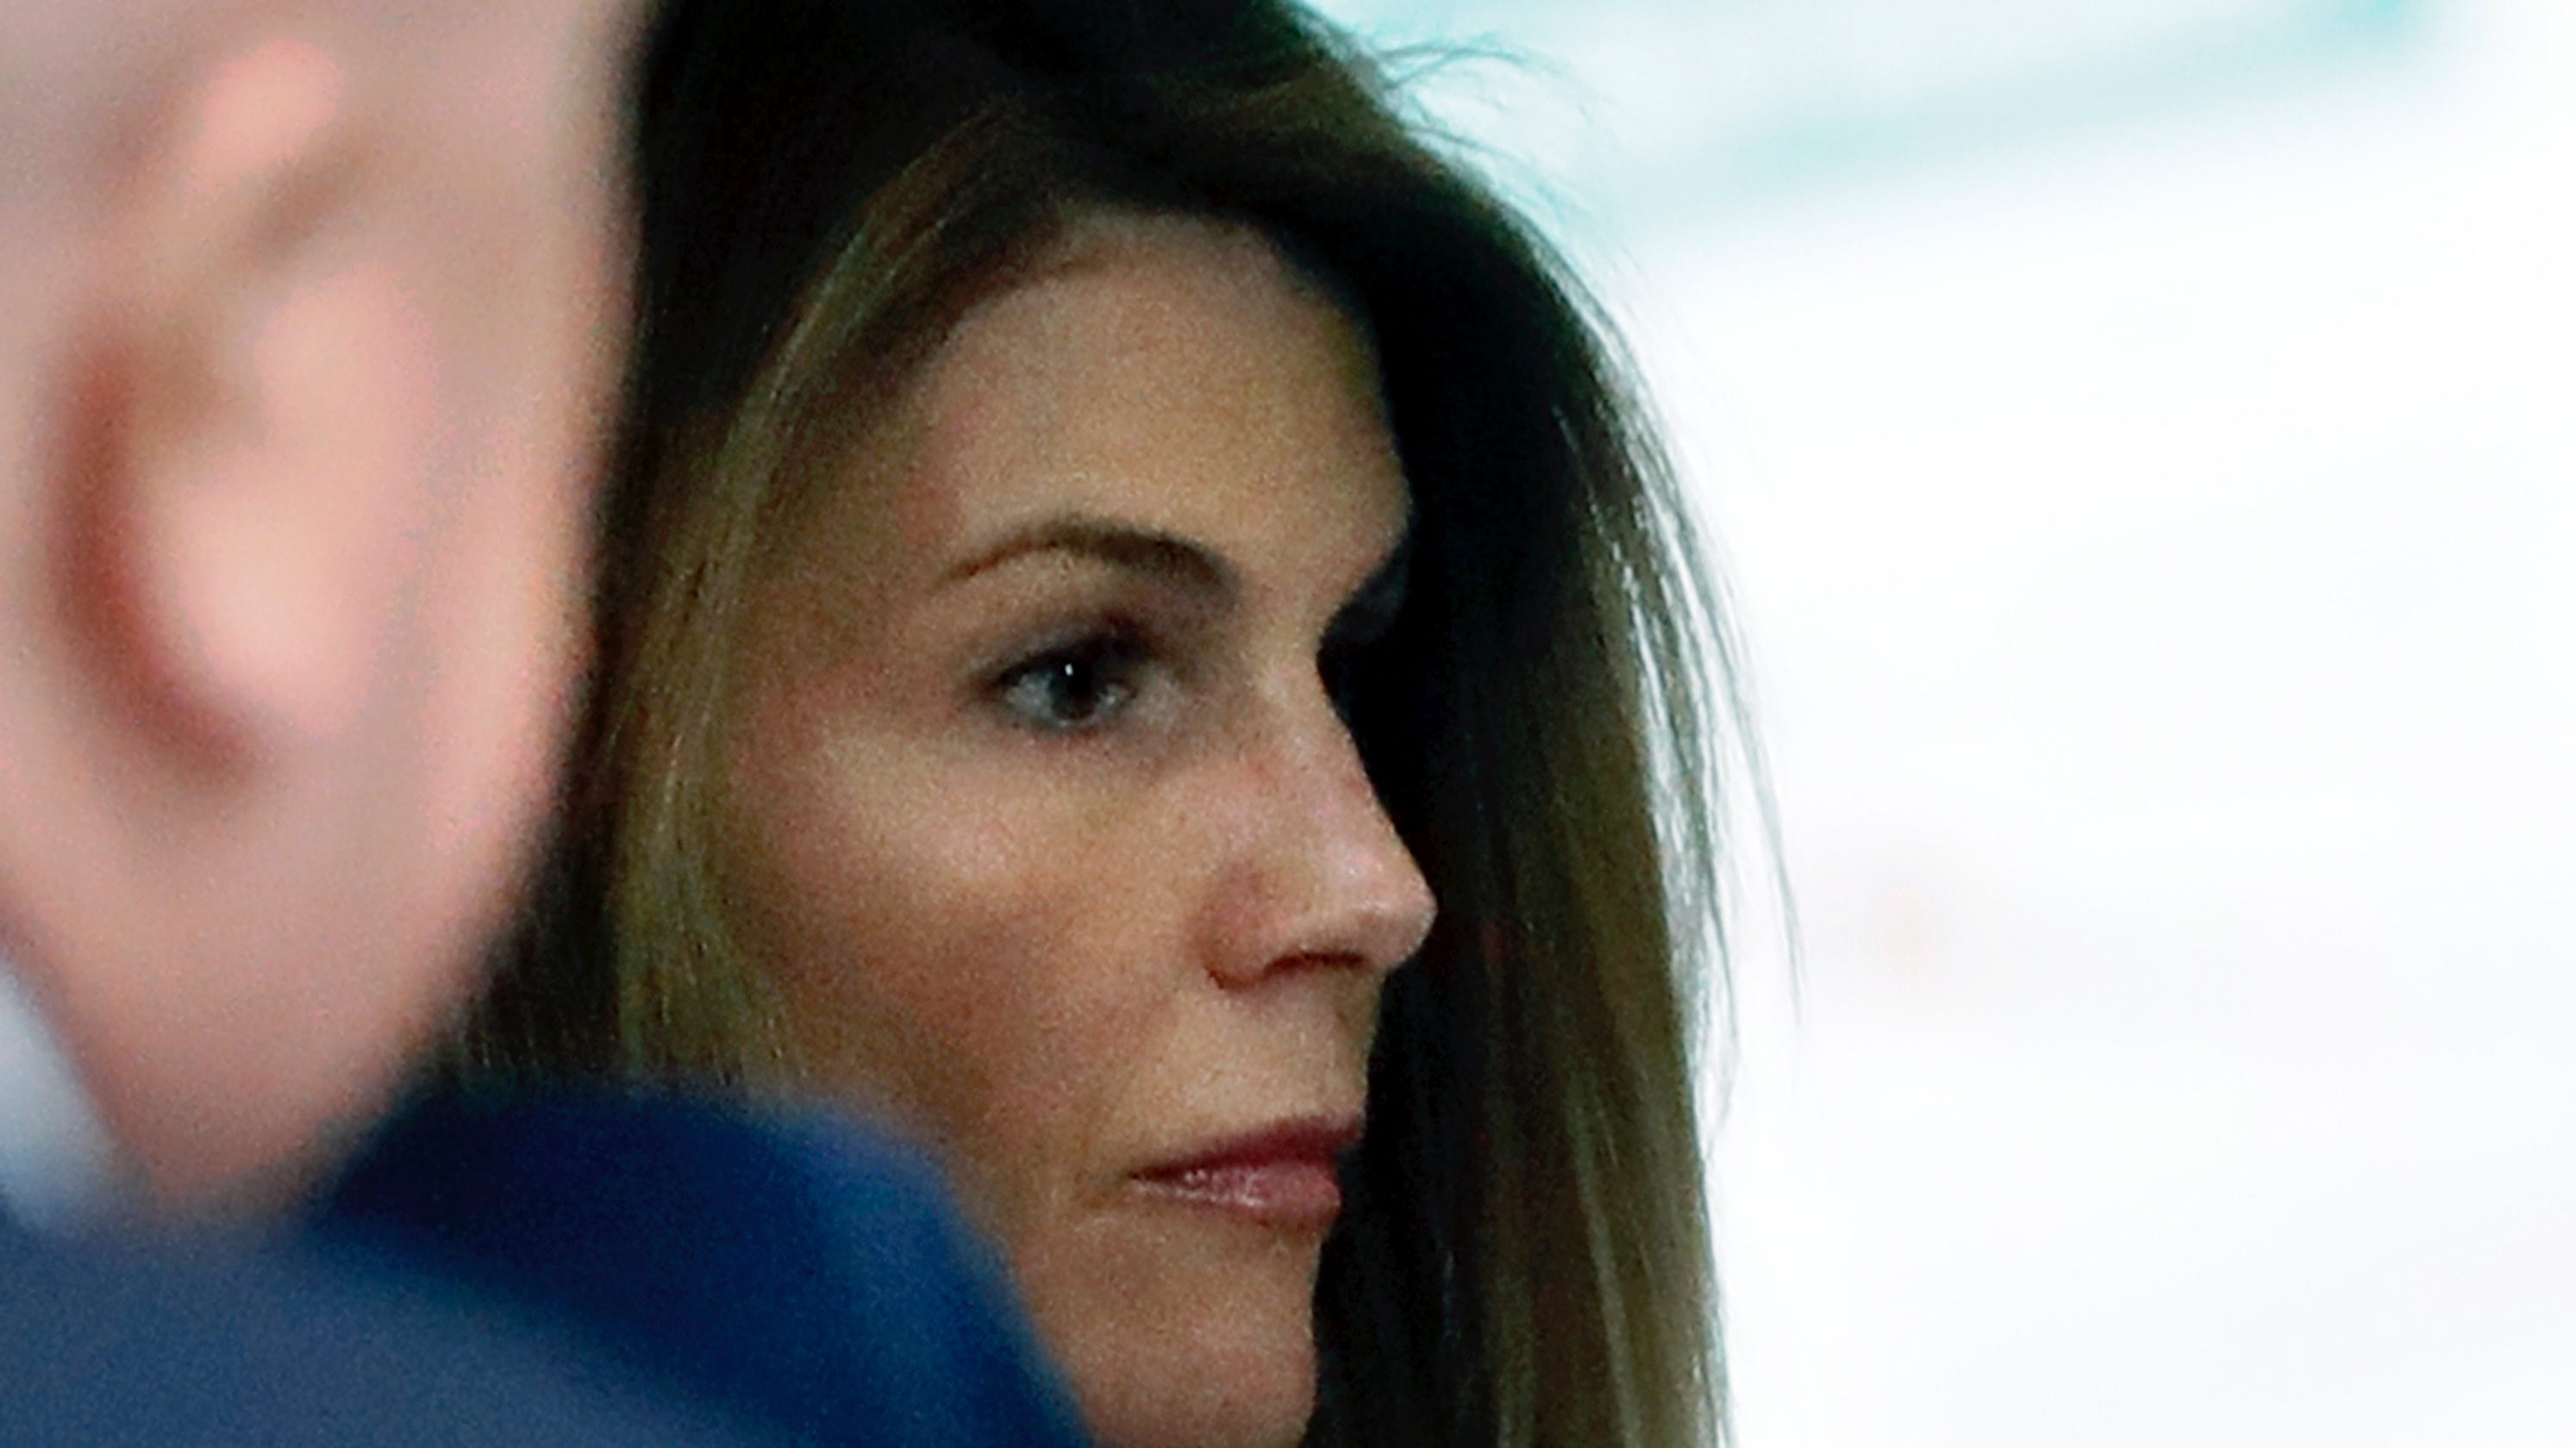 Lori Loughlin faces 'substantially higher' prison sentence than Felicity Huffman if convicted